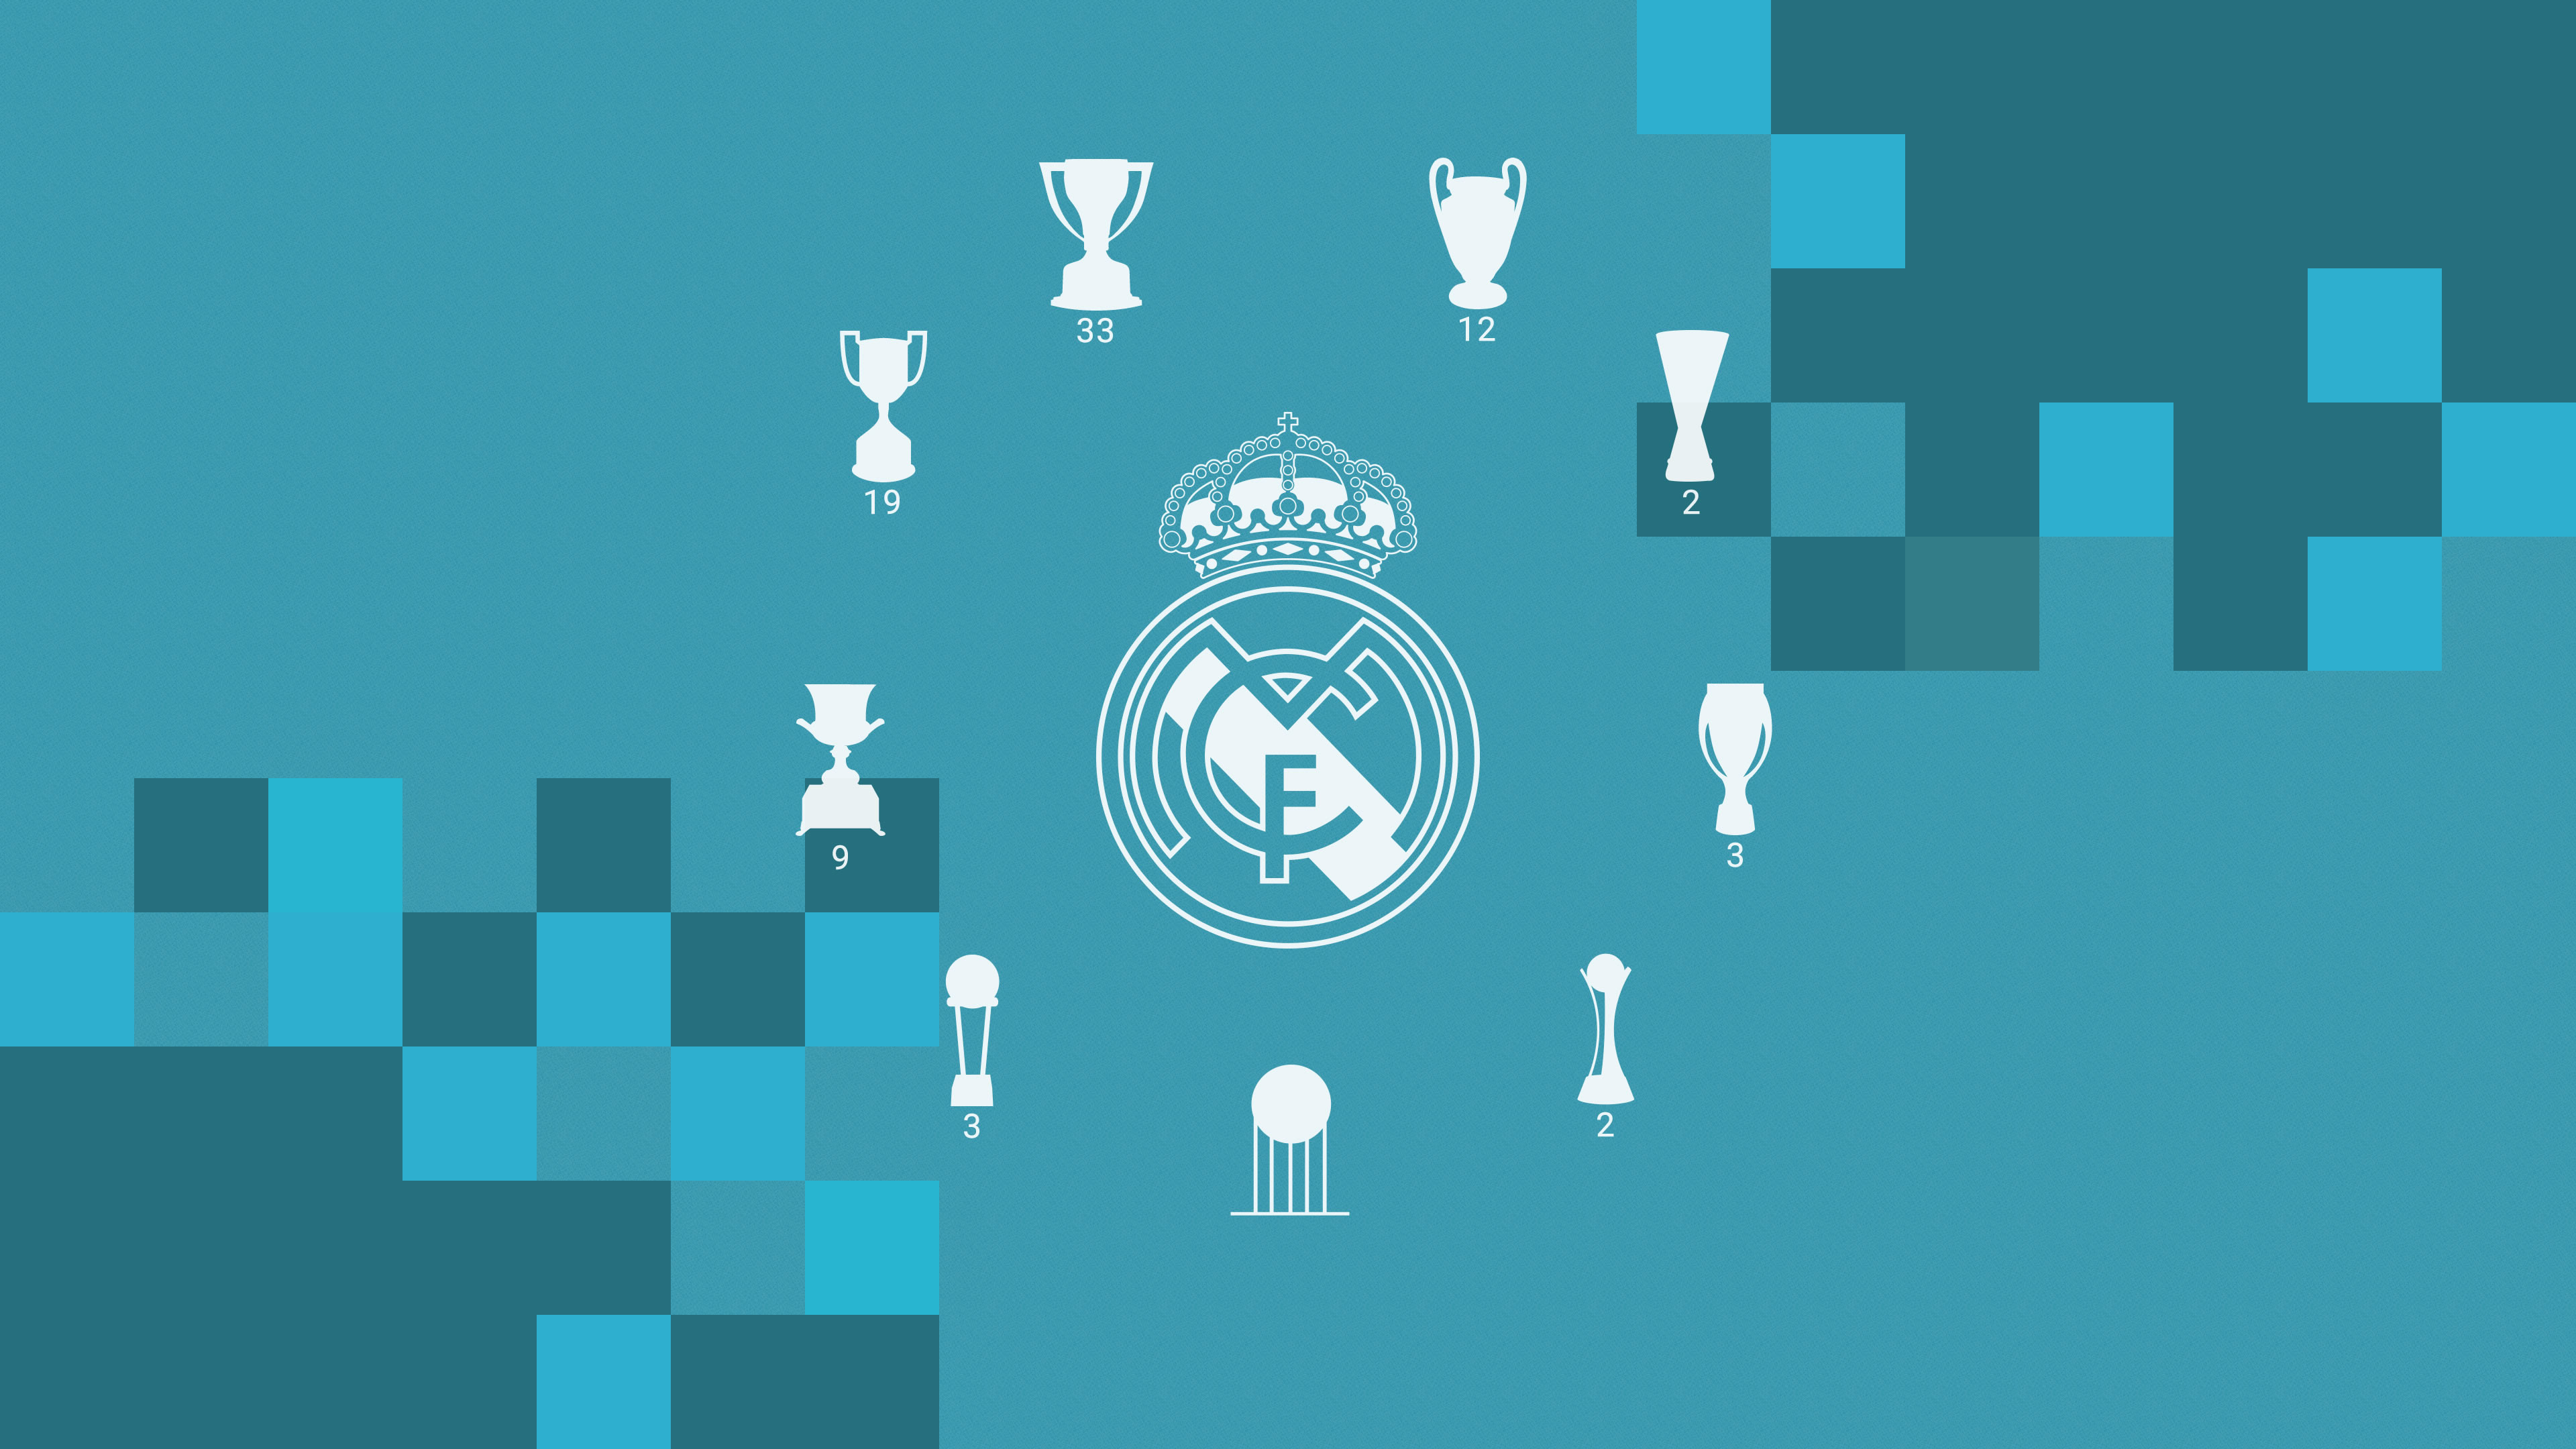 Real Madrid Wallpaper HD 2018 71 images 3840x2160